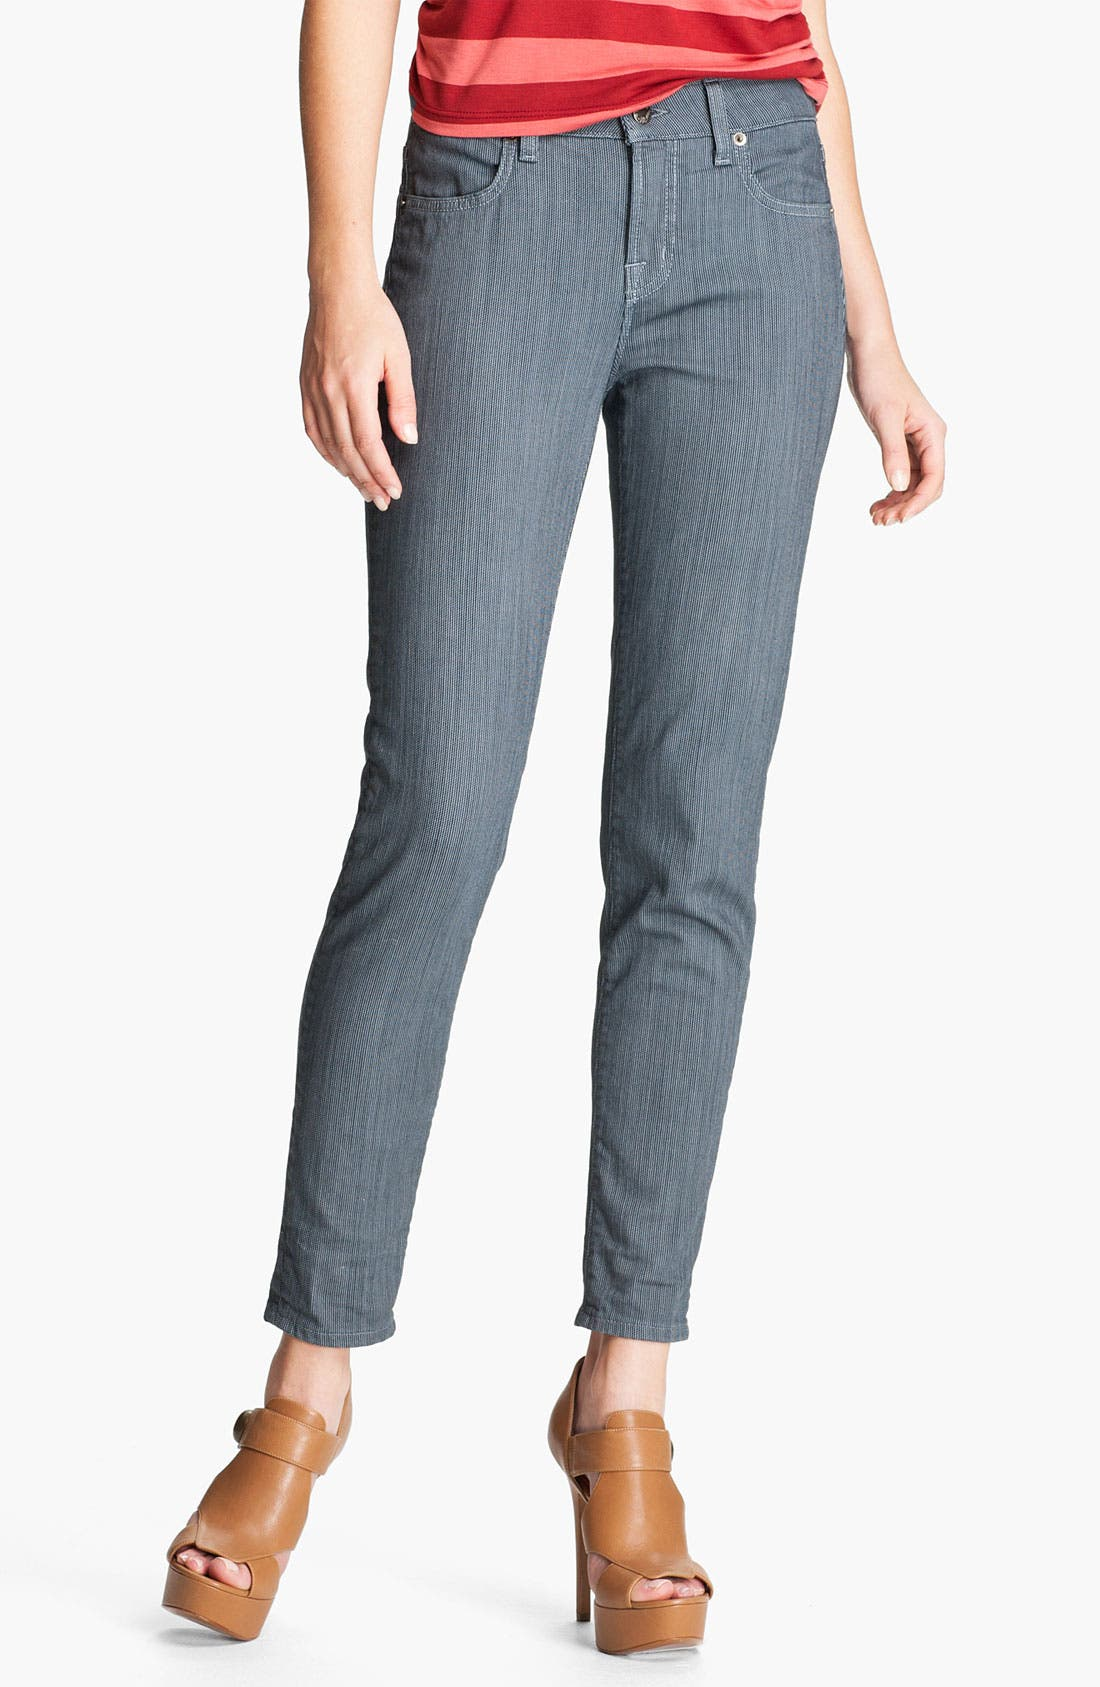 Alternate Image 1 Selected - Blue Essence Pinstripe Skinny Jeans